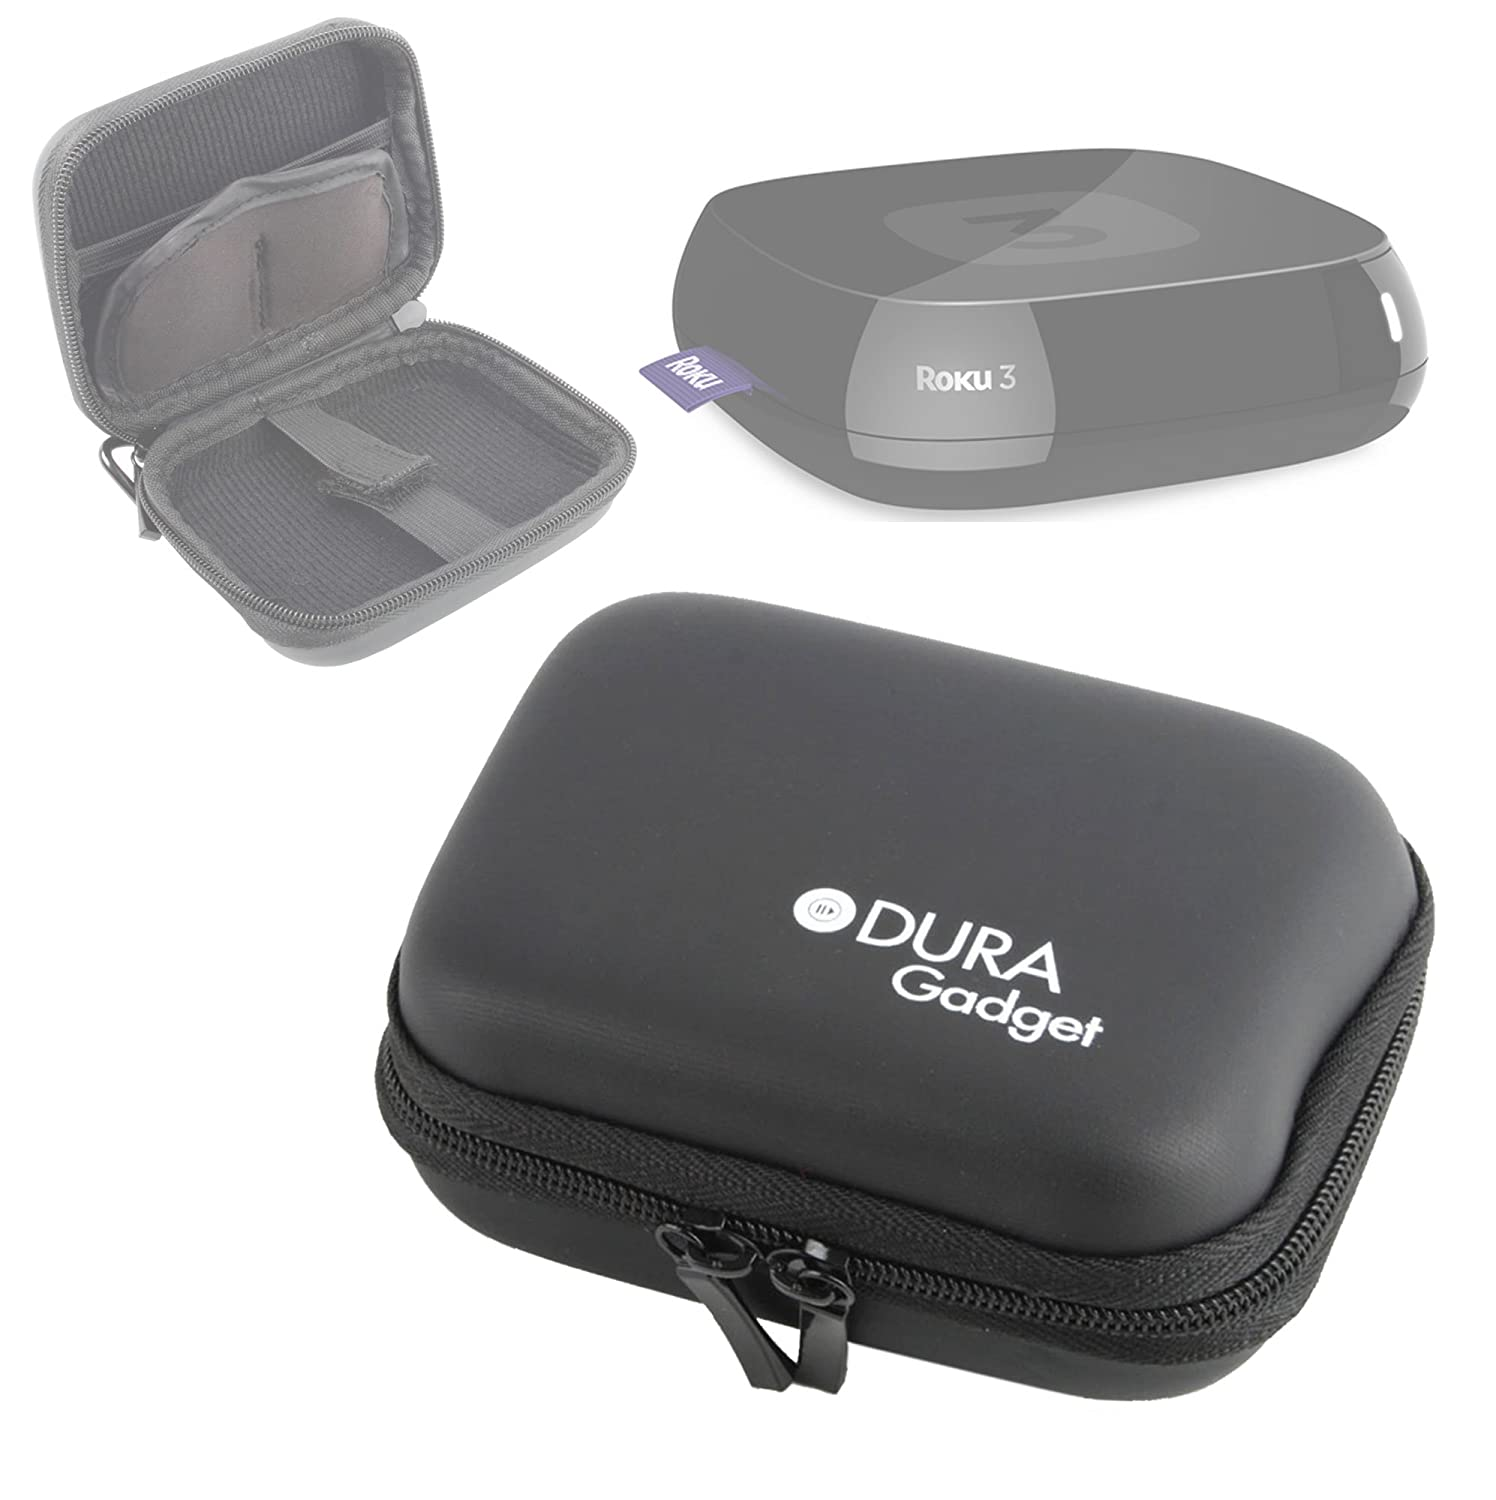 DURAGADGET Premium Black Shell Carry Case with Belt Clip - Suitable for The Roku 3 TV Streaming Player